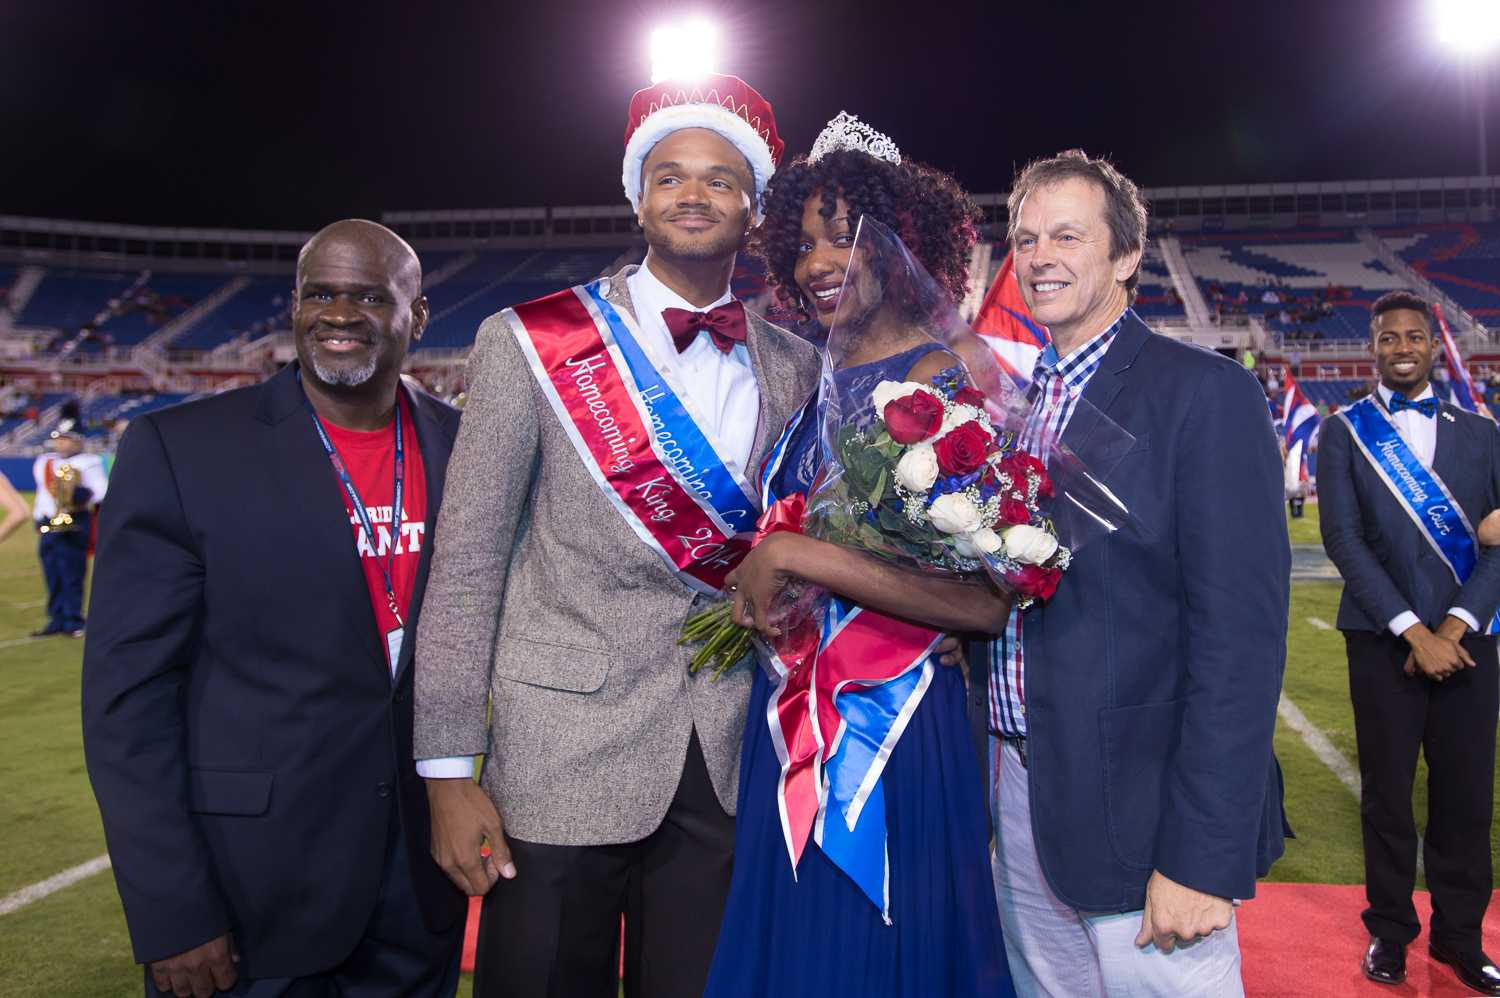 [ Max Jackson | Photo Editor ] FAU Homecoming King Byron Knight and Queen Sherrika Mitchel pose with President Kelly and Dr. King at FAU's Homecoming game against UAB.